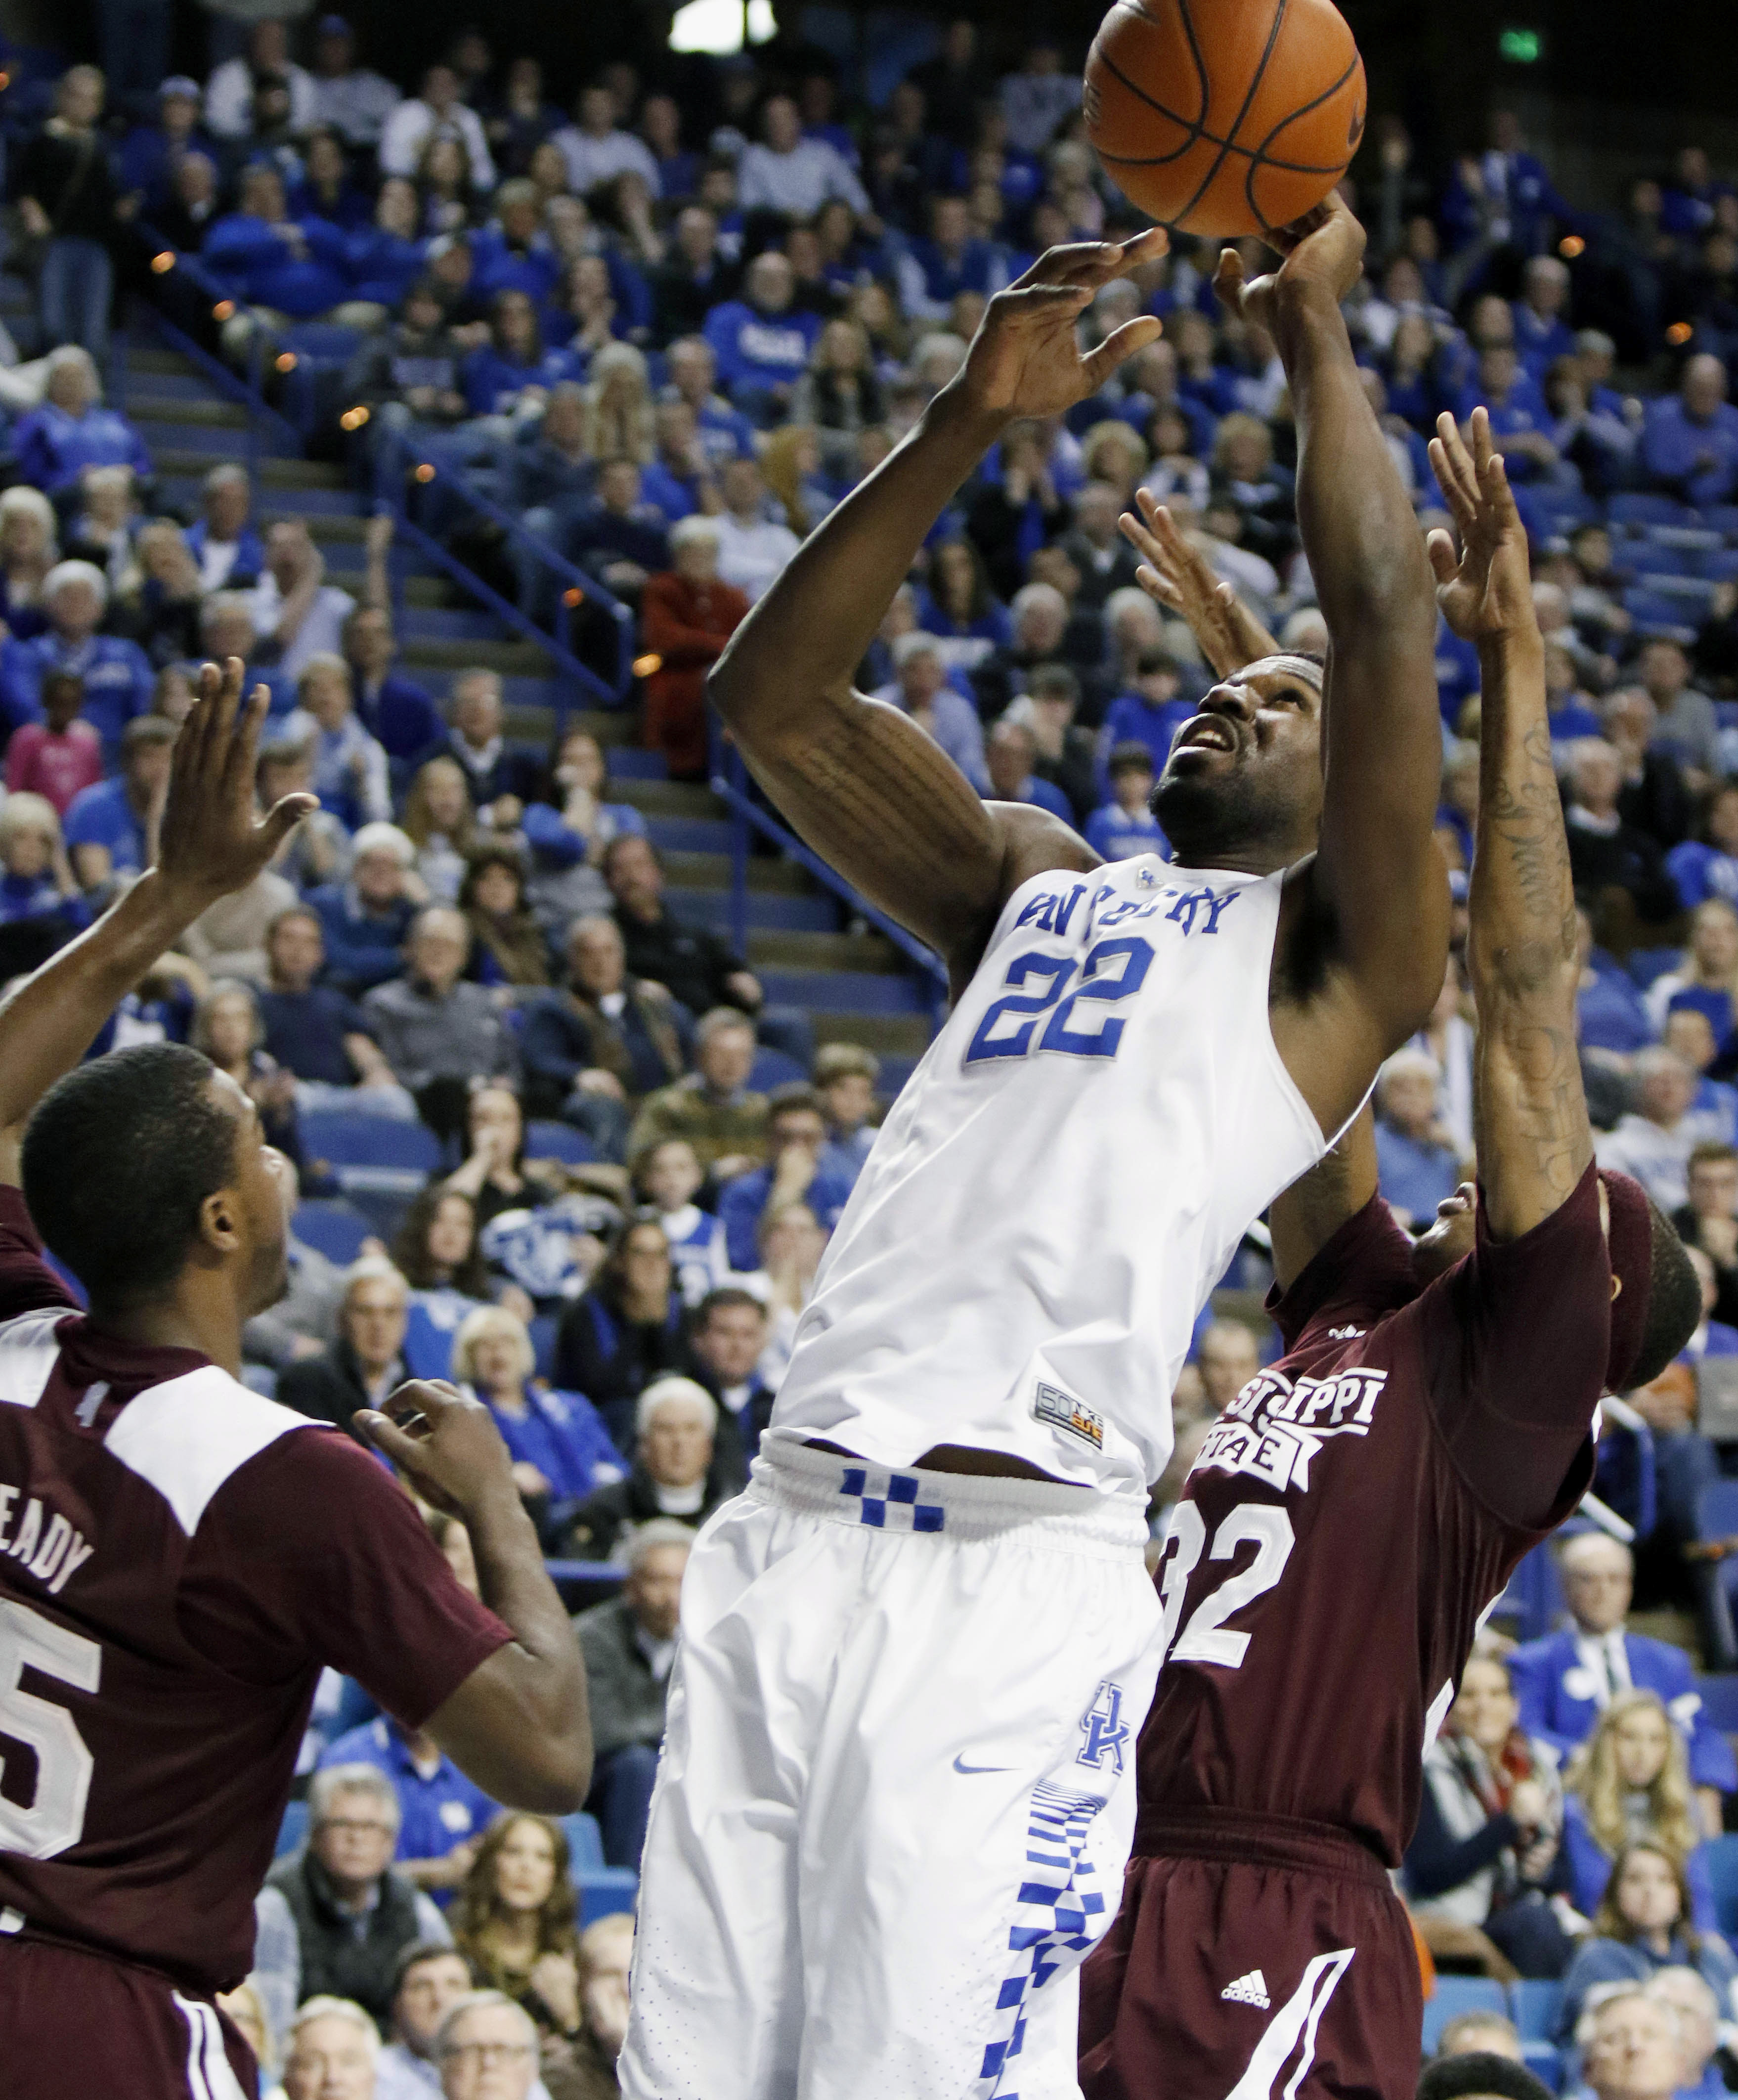 Kentucky's Alex Poythress (22) shoots between Mississippi State's I.J. Ready, left, and Craig Sword during the second half of an NCAA college basketball game Tuesday, Jan. 12, 2016, in Lexington, Ky. Kentucky won 80-74. (AP Photo/James Crisp)